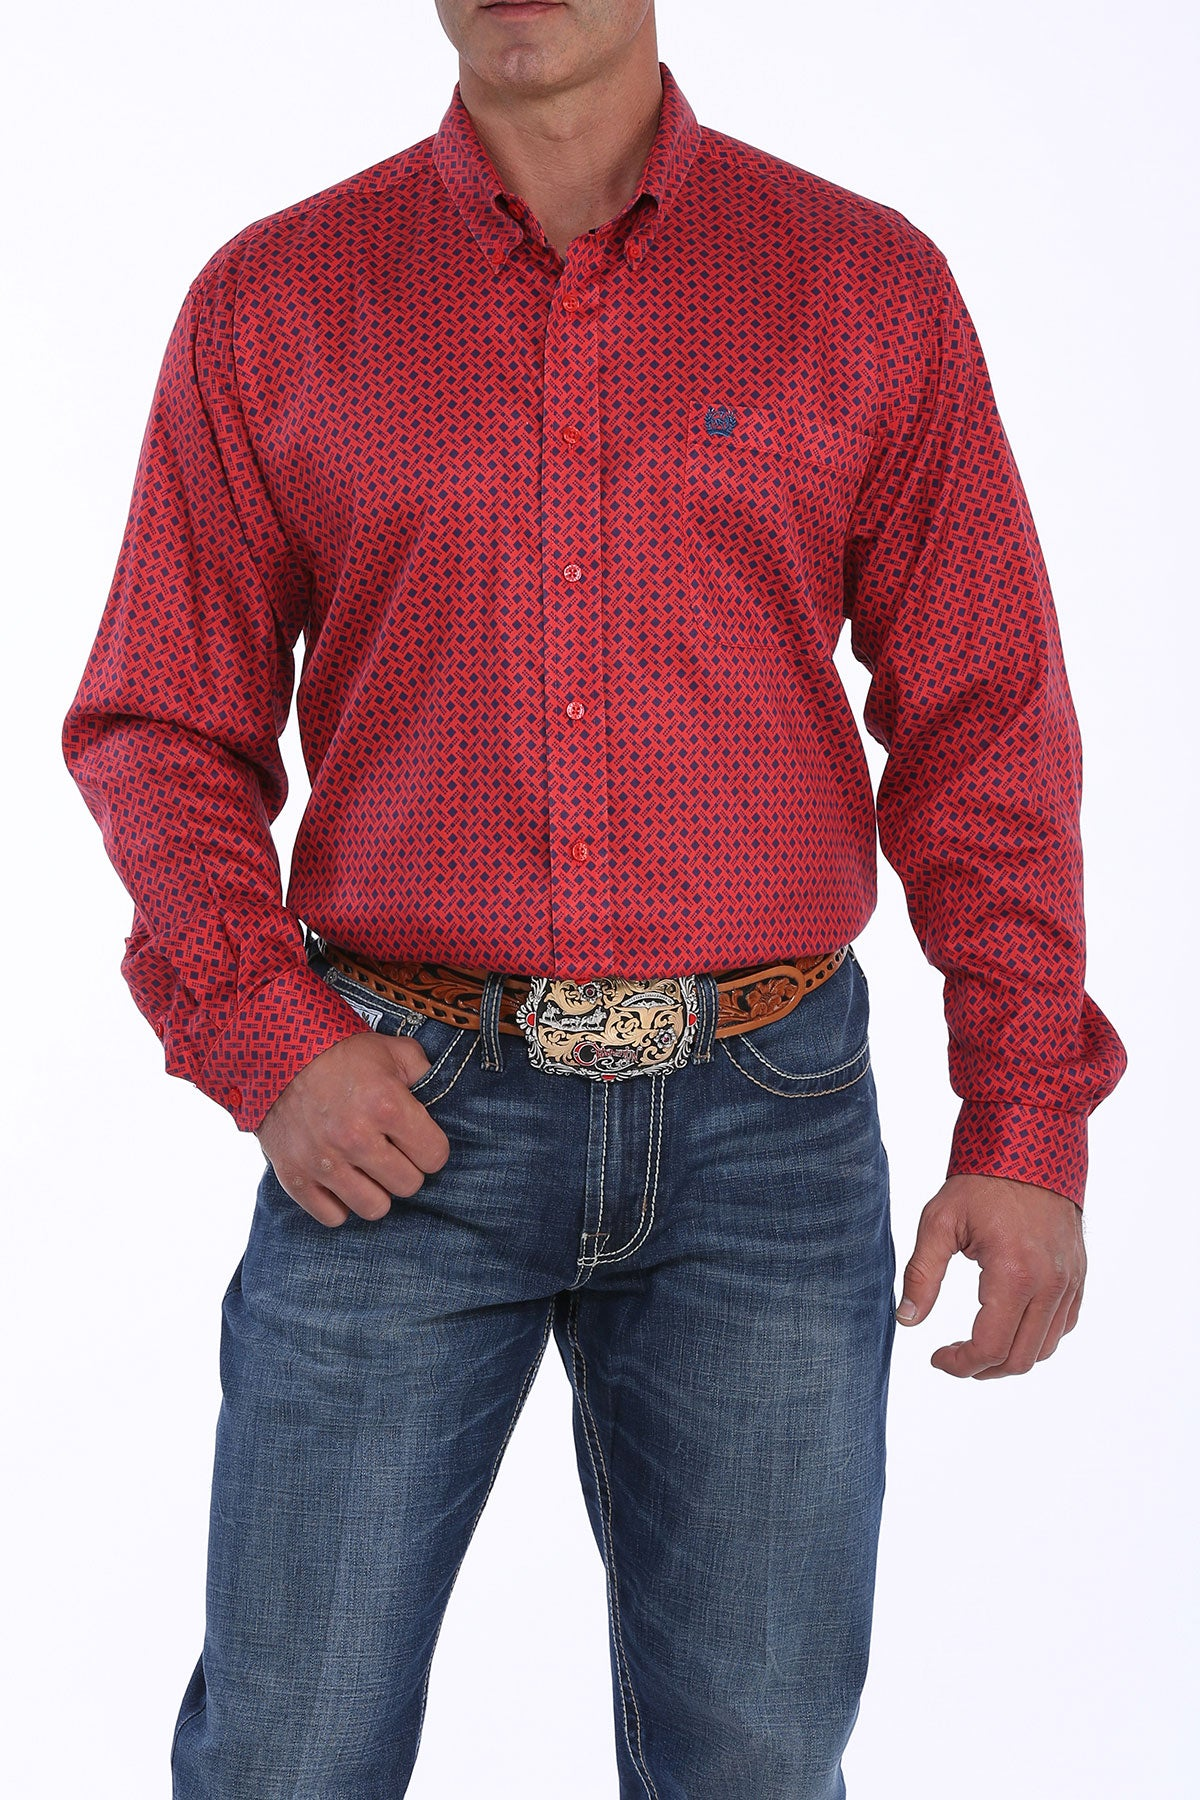 Cinch Red Graphic Print Men's Button Down